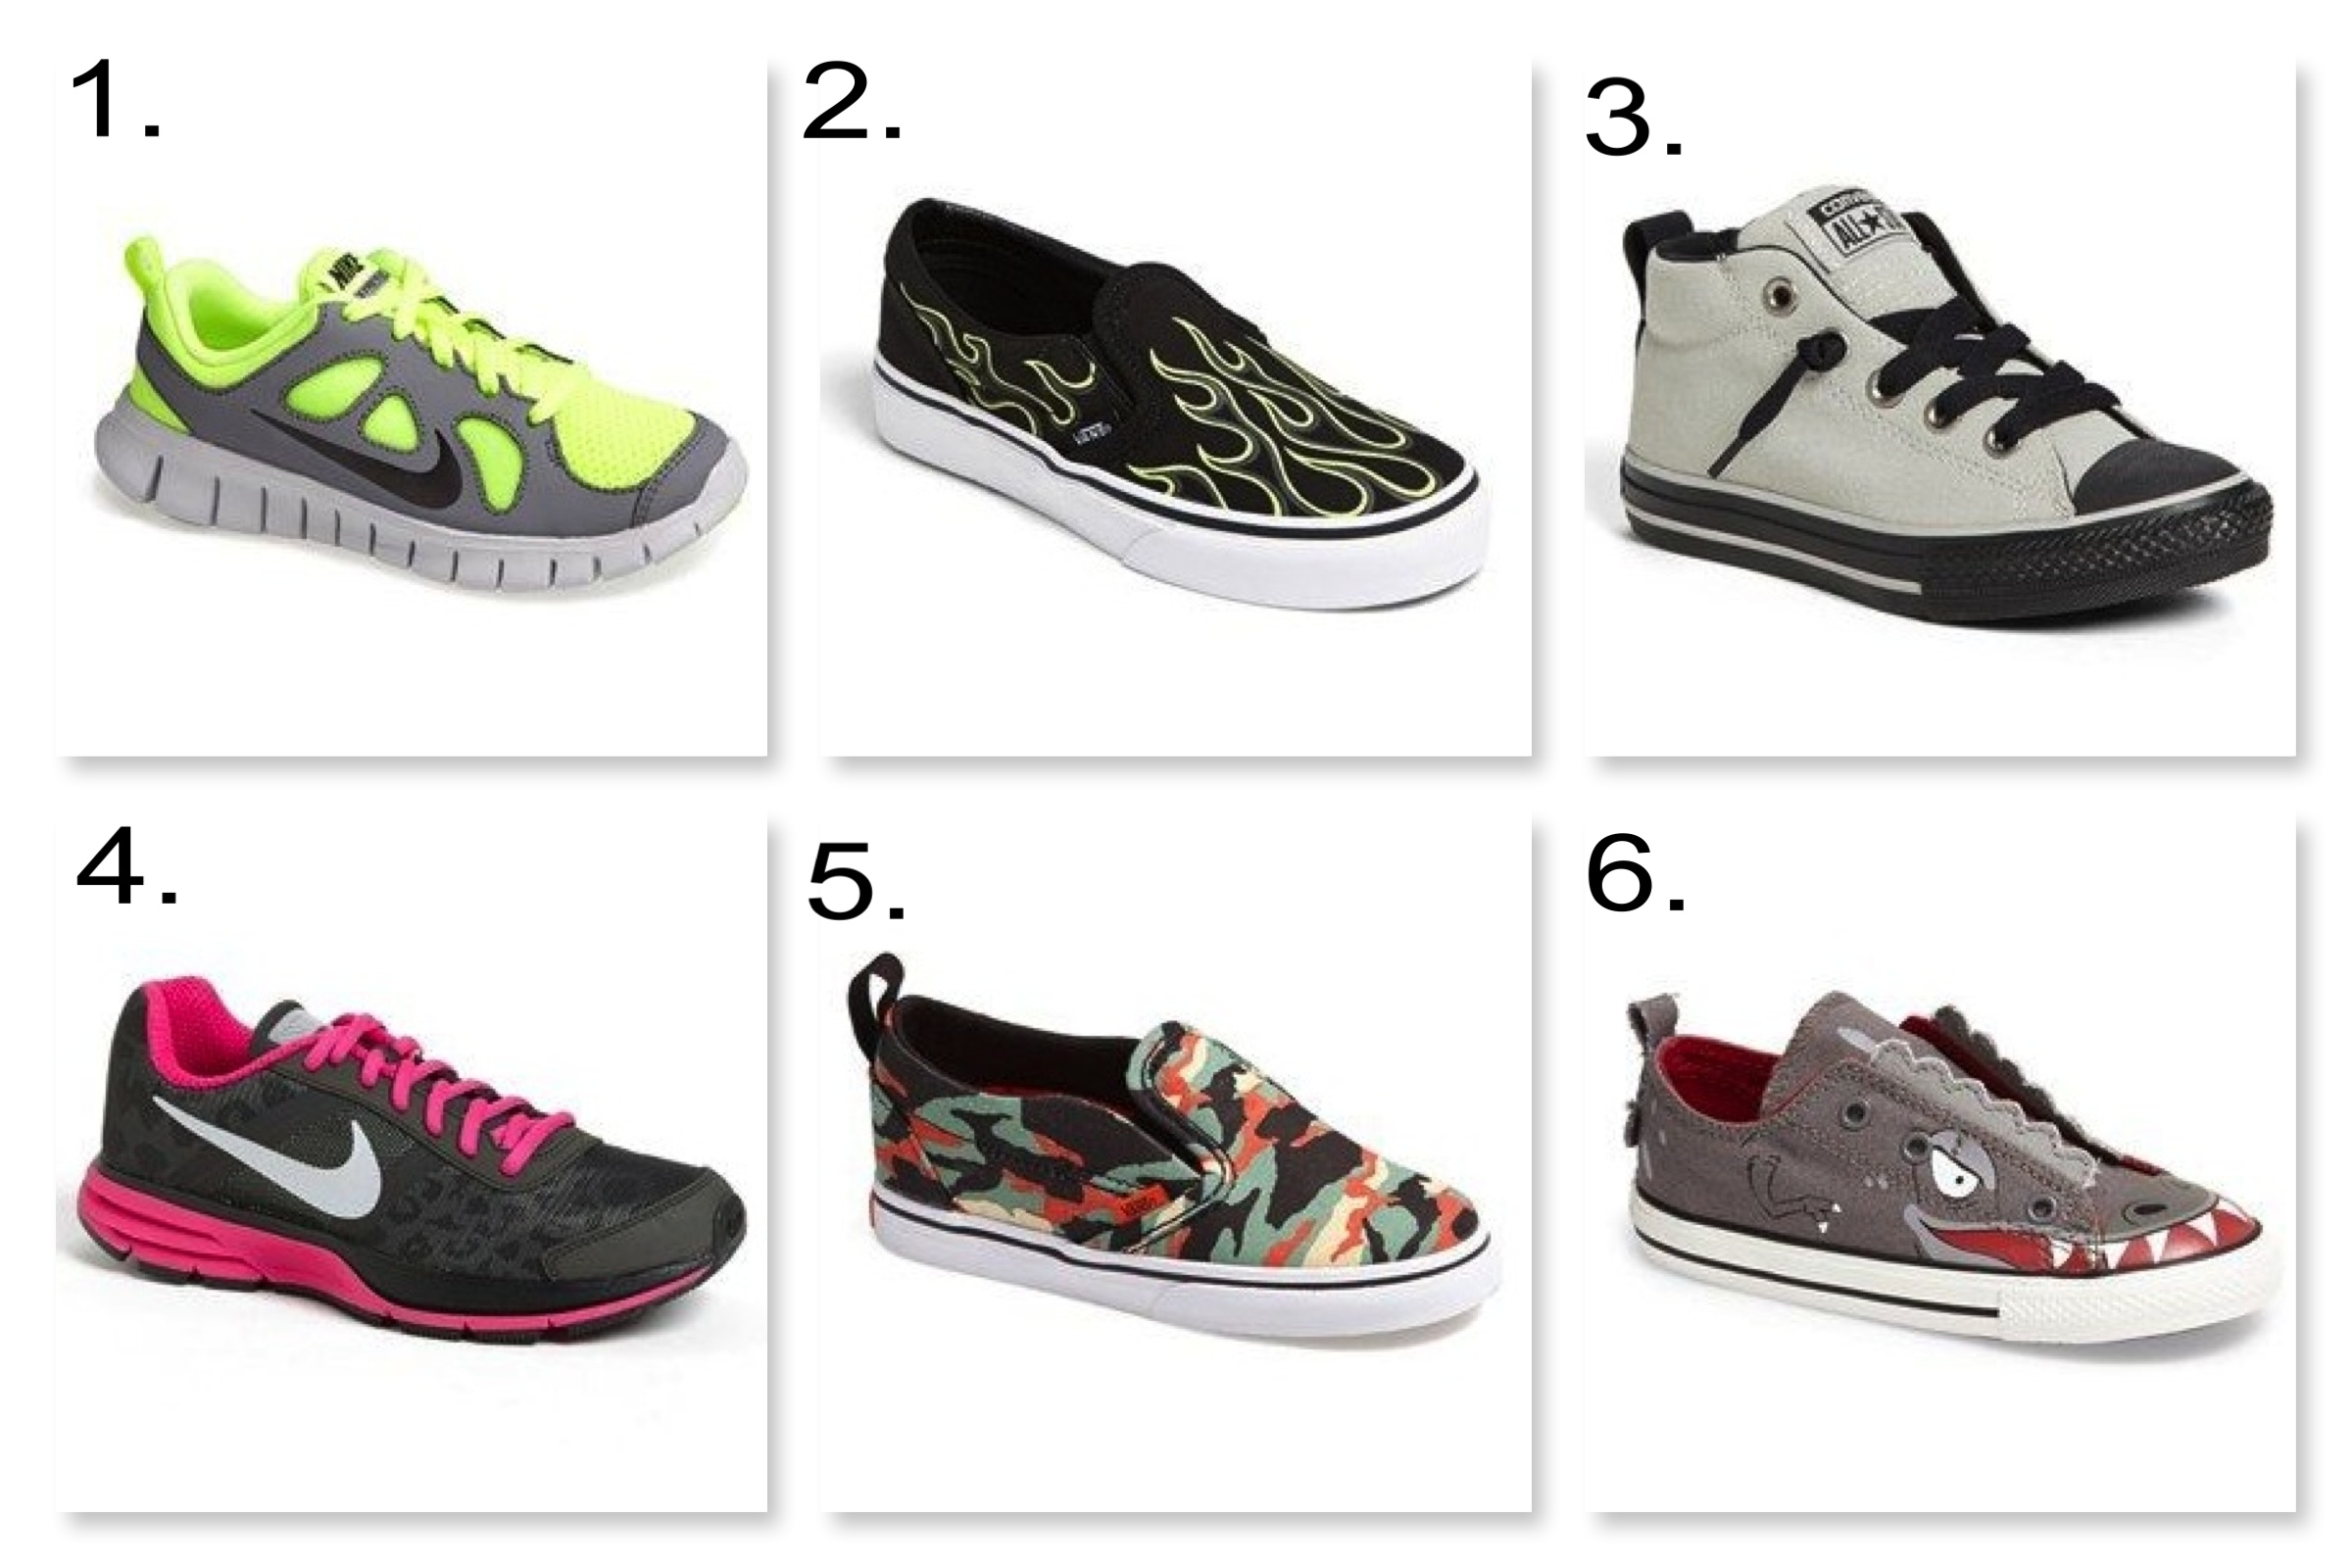 Nordstrom  is having a Shoe Clearance with up to 40% off Shoes.  1. Nike 'Free Run 5.0' Running Shoe |2. Vans Glow in the Dark Slip-On  | 3. Converse Chuck Taylor® All Star® 'Street' Sneaker  |4. Nike 'Air Pegasus+ 30 Shield' Running Shoe |5. Vans 'V' Camo Print Slip-On  | 6. Converse Chuck Taylor® All Star® Slip-On